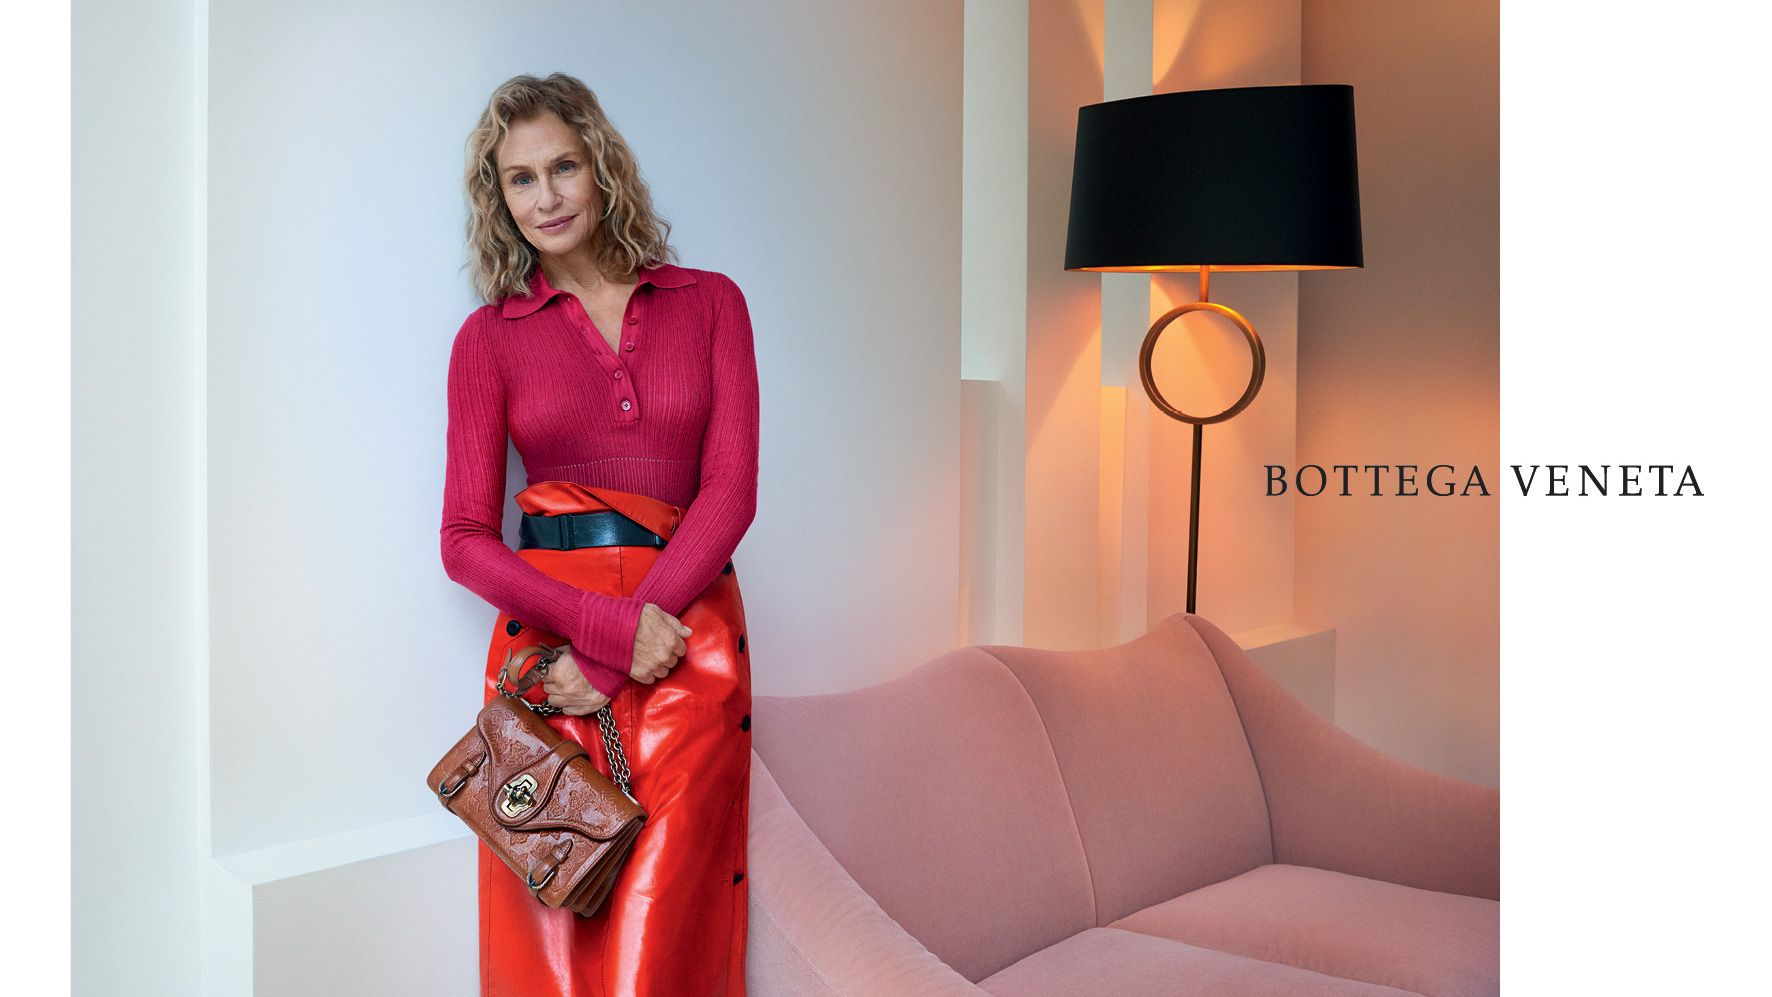 Lauren Hutton Is the Face of a Major New Campaign—At 73